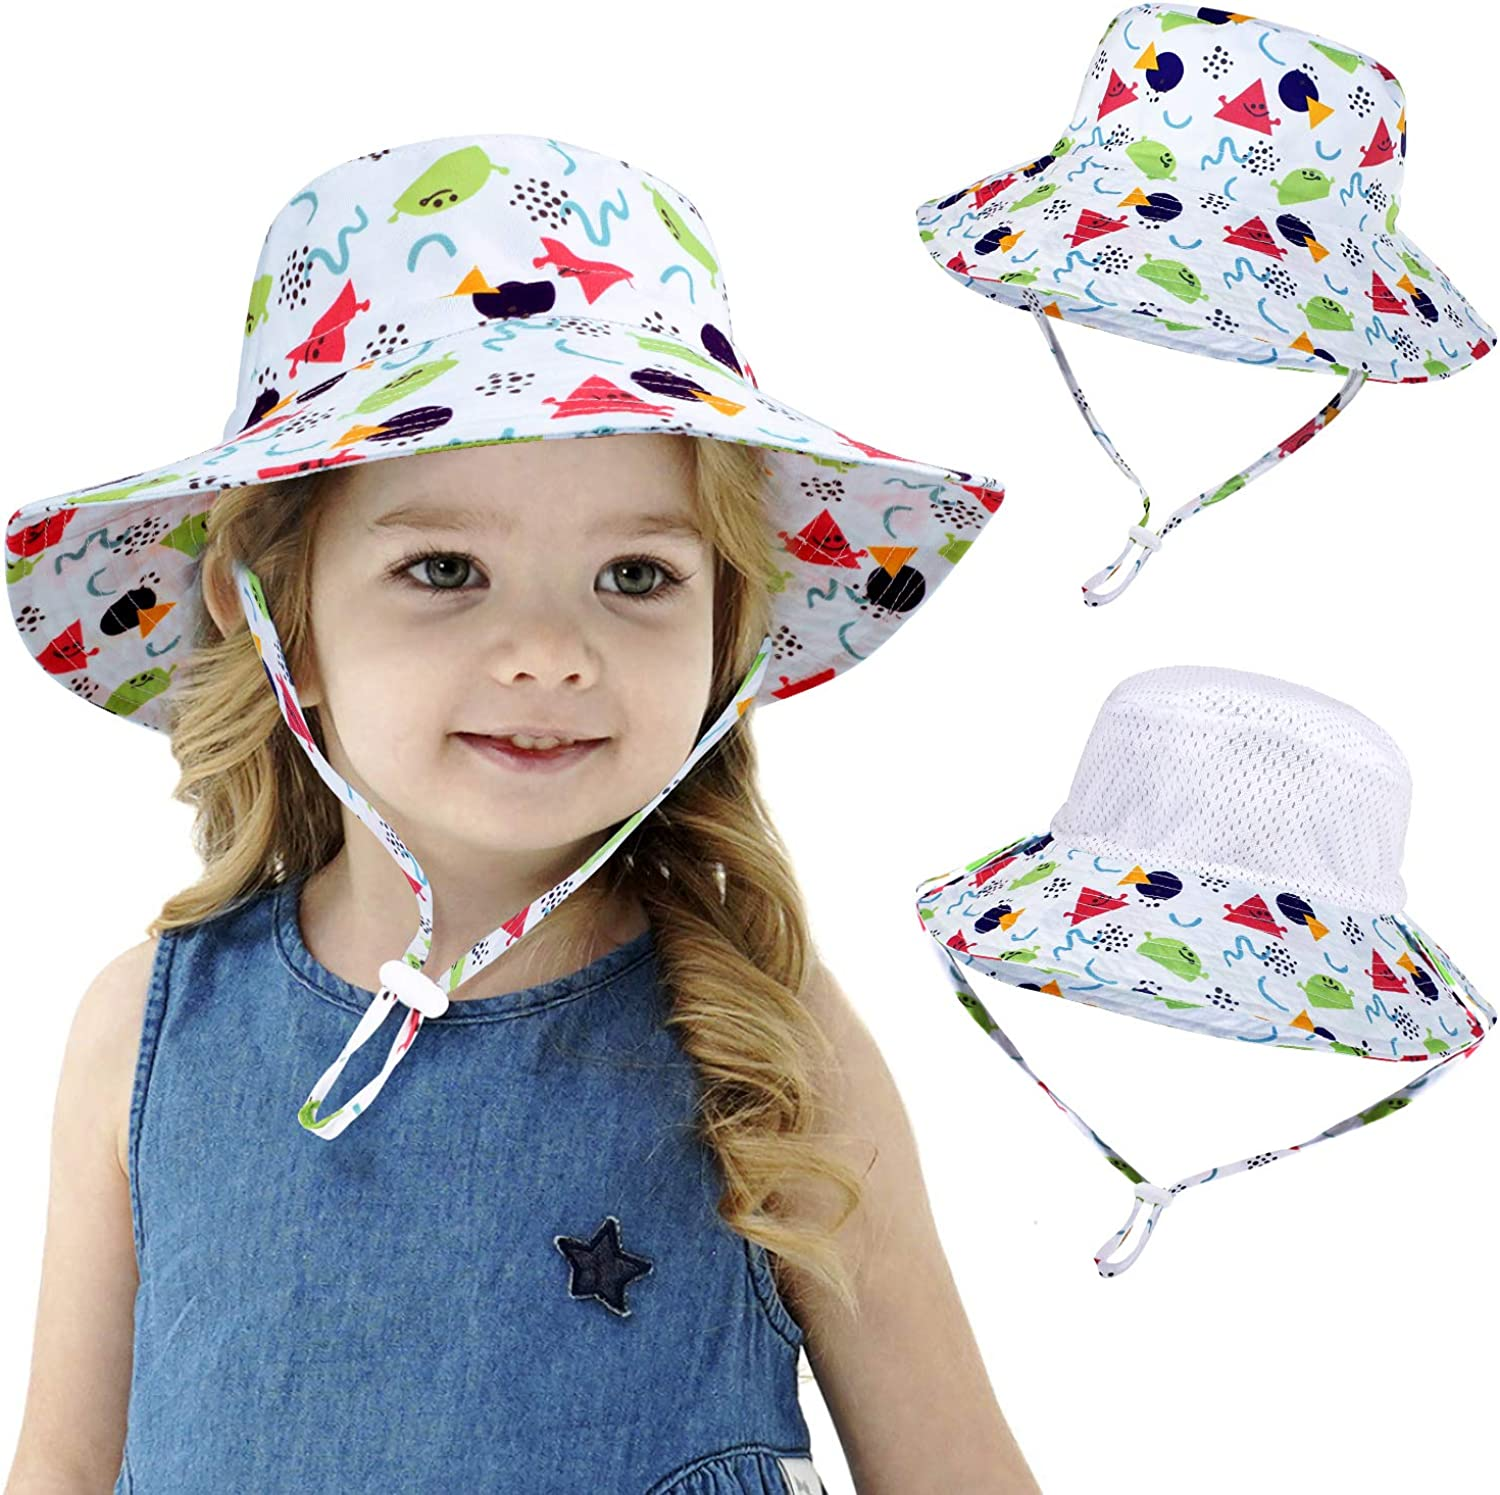 Baby Boys Bucket Hat Cap Summer Toddler Kids Stars Sun Hat Wide Brim 100/% Cotton